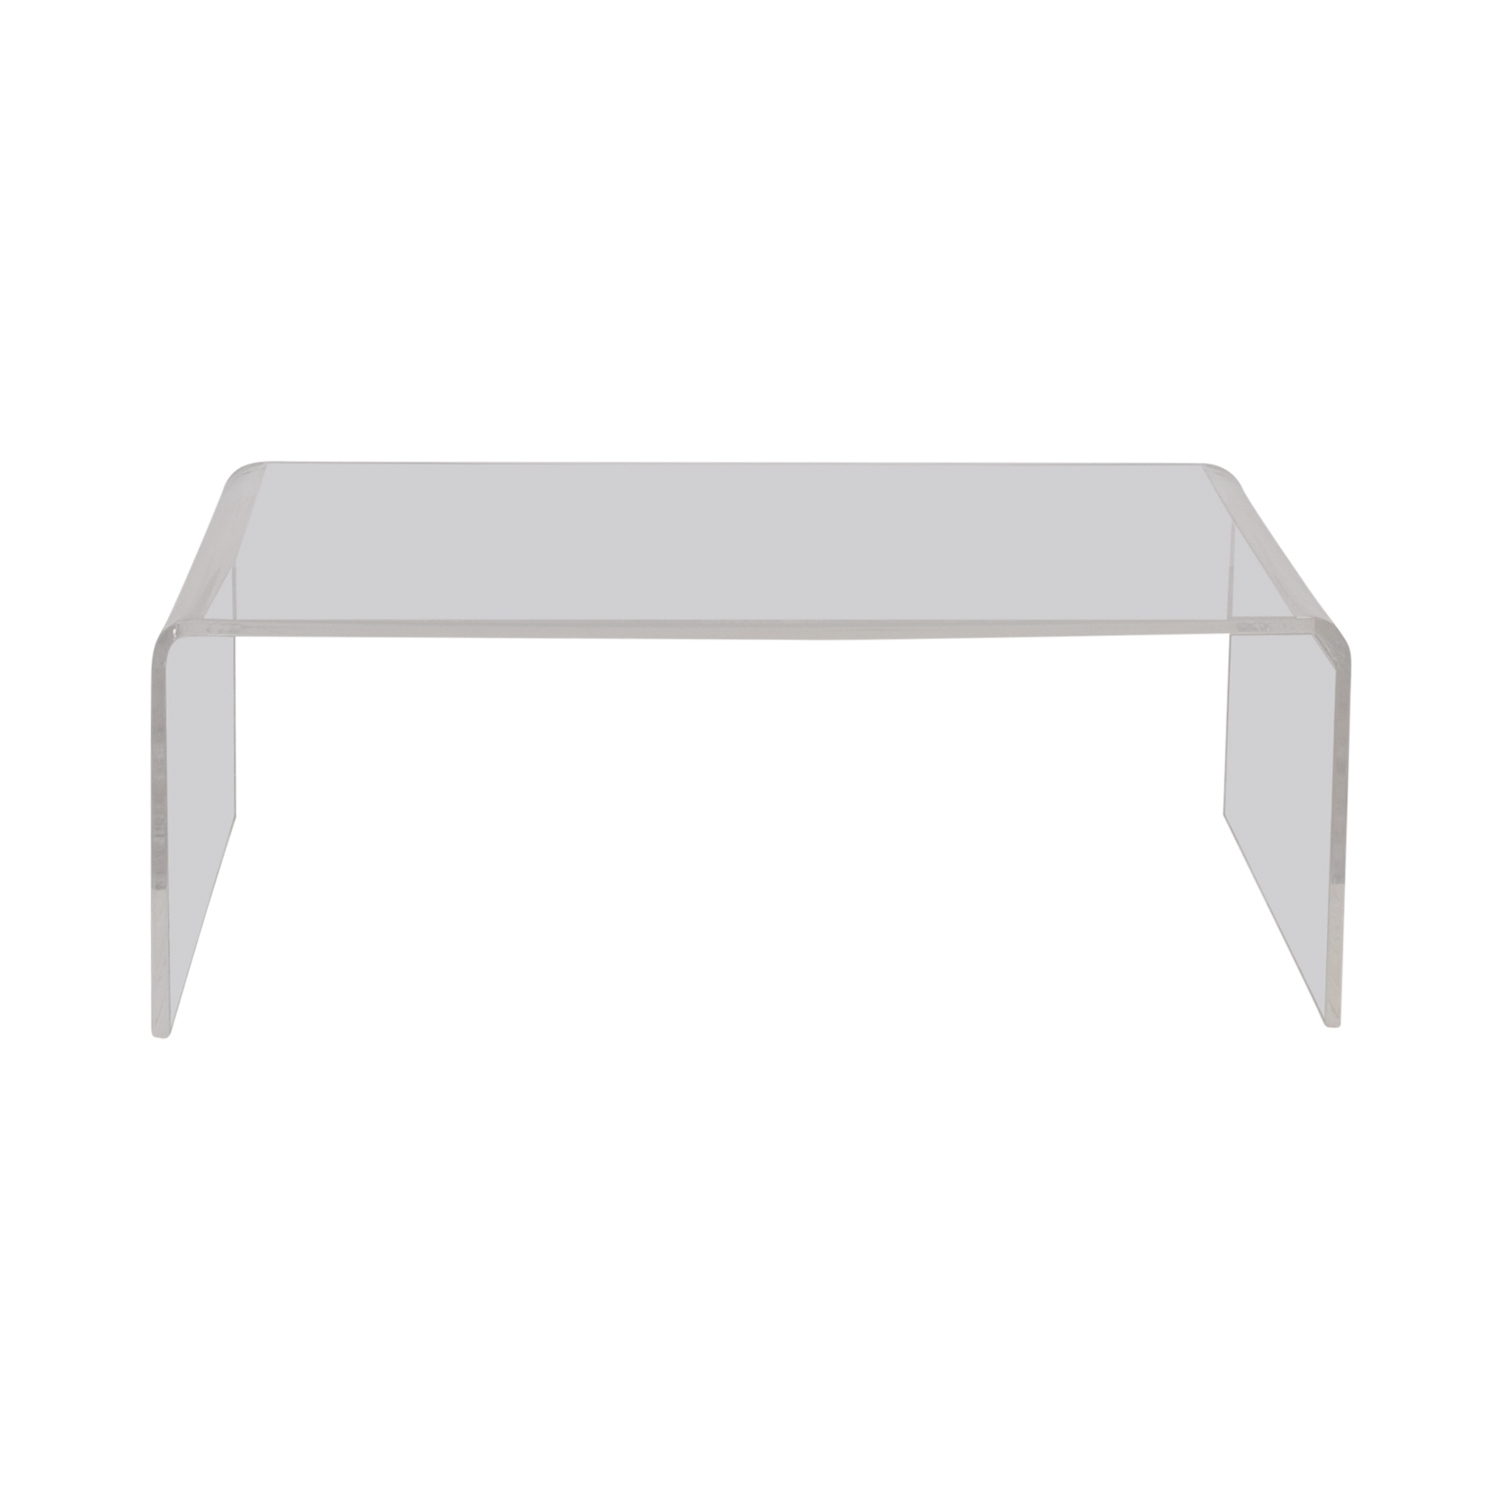 67% Off - Cb2 Cb2 Peekaboo Acrylic Coffee Table / Tables with regard to Peekaboo Acrylic Coffee Tables (Image 3 of 30)